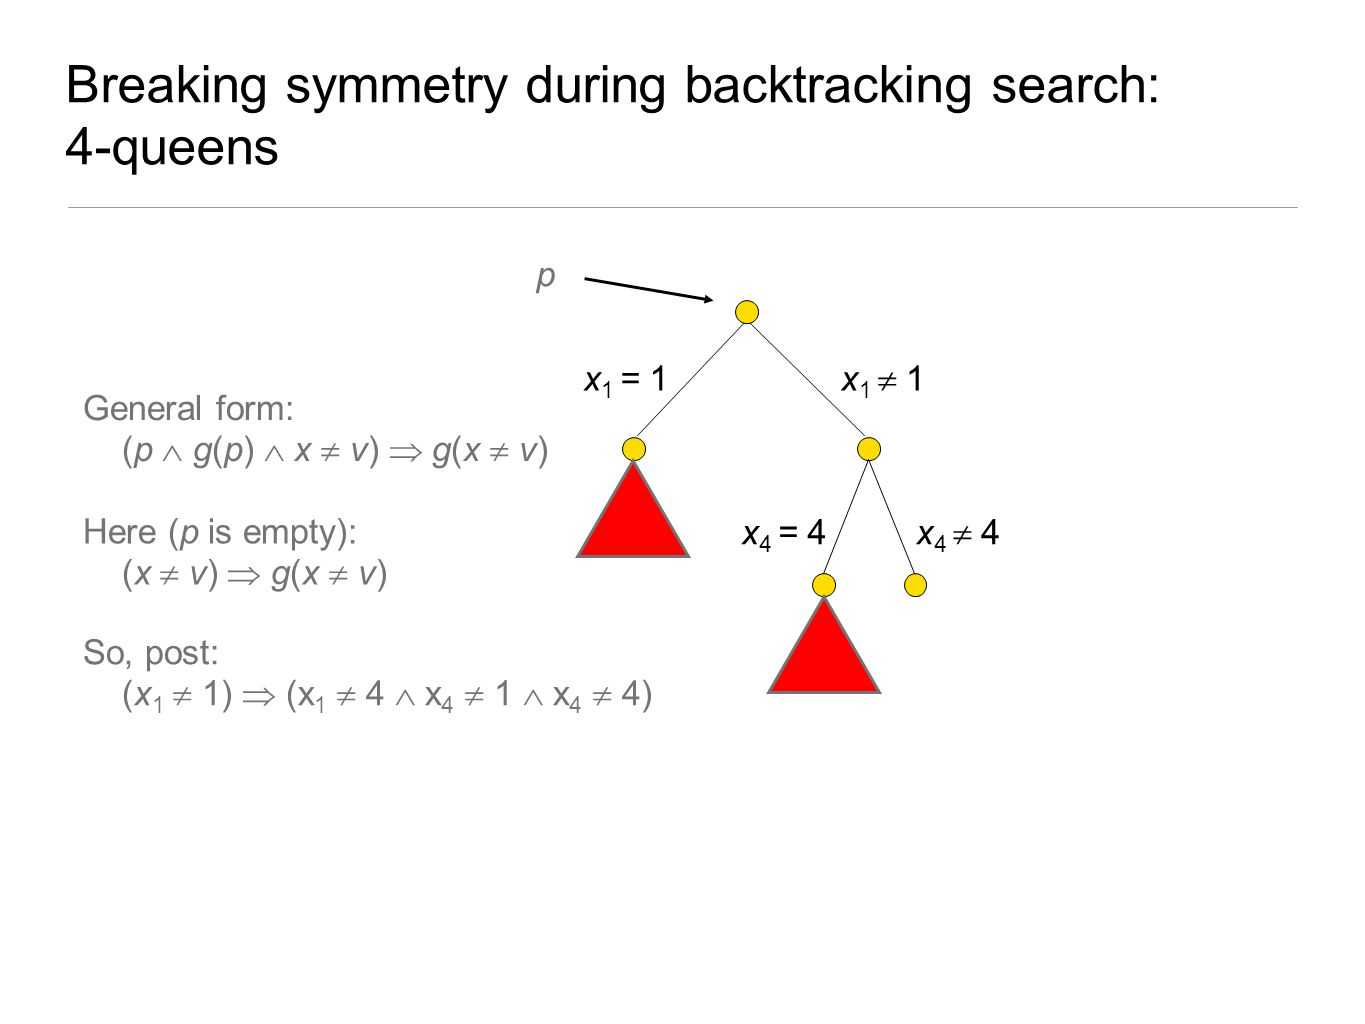 Breaking symmetry during backtracking search: 4-queens x 1 = 1 x 1  1 x 4 = 4 x 4  4 General form: (p  g(p)  x  v)  g(x  v) p Here (p is empty)